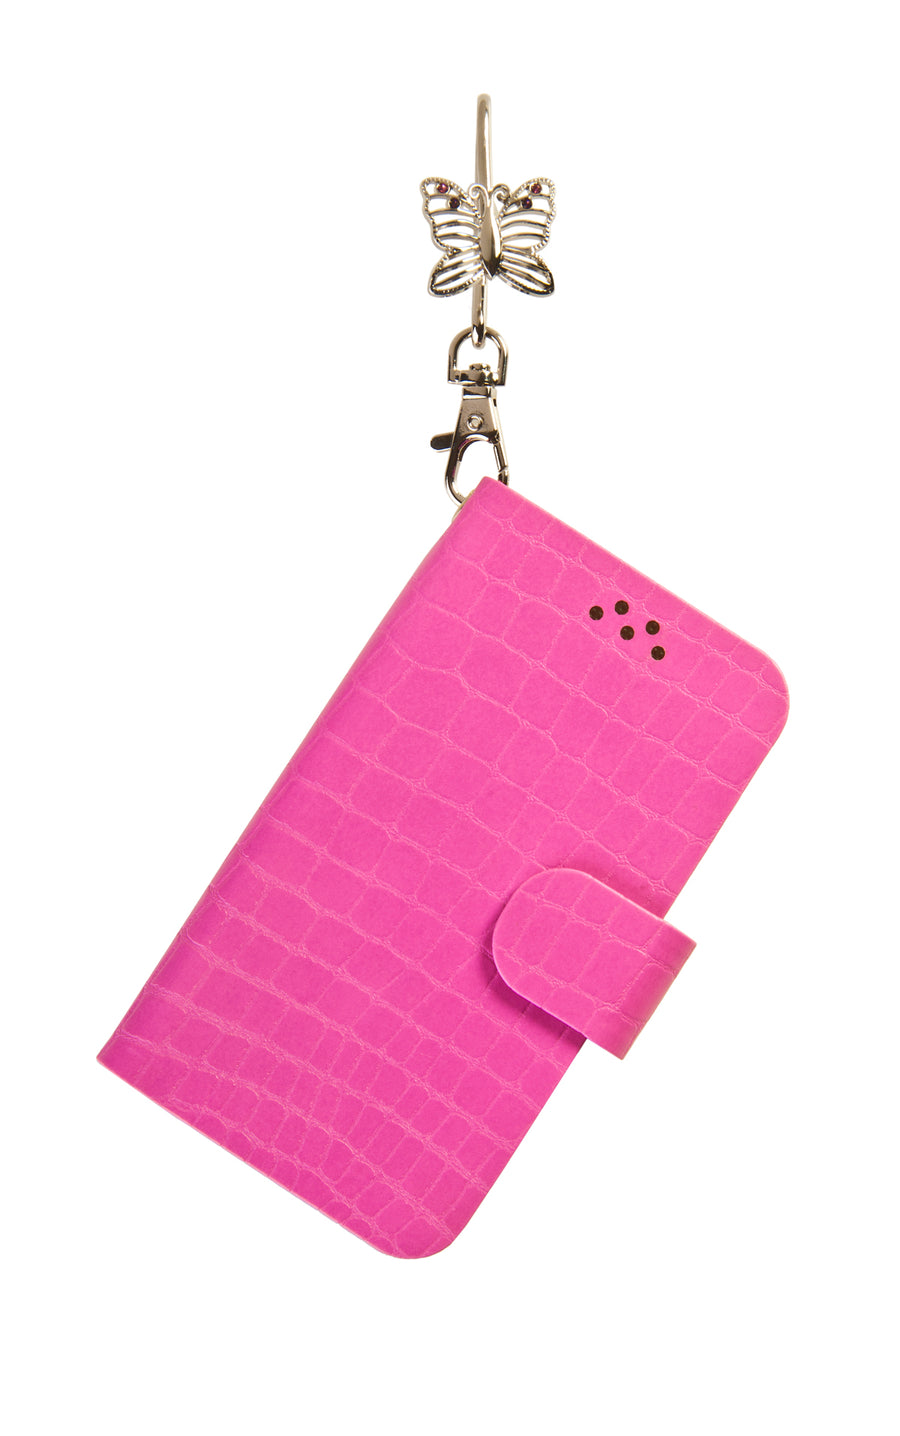 Pink Phone Key'Purse Diary Case with Silver Butterfly